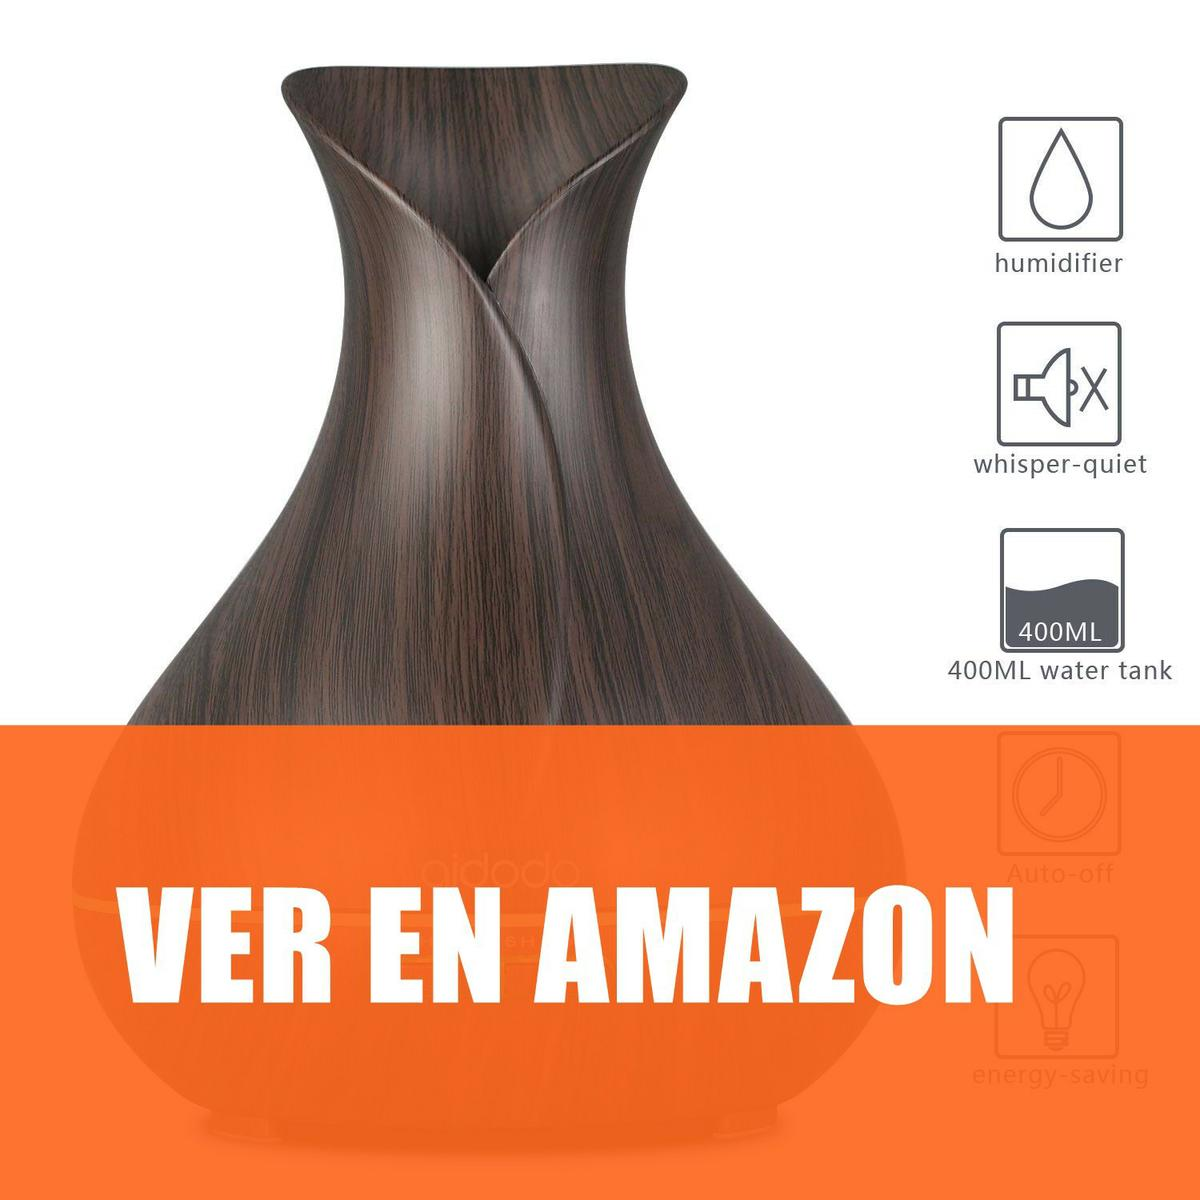 Aidodo 400ml - Humidificador